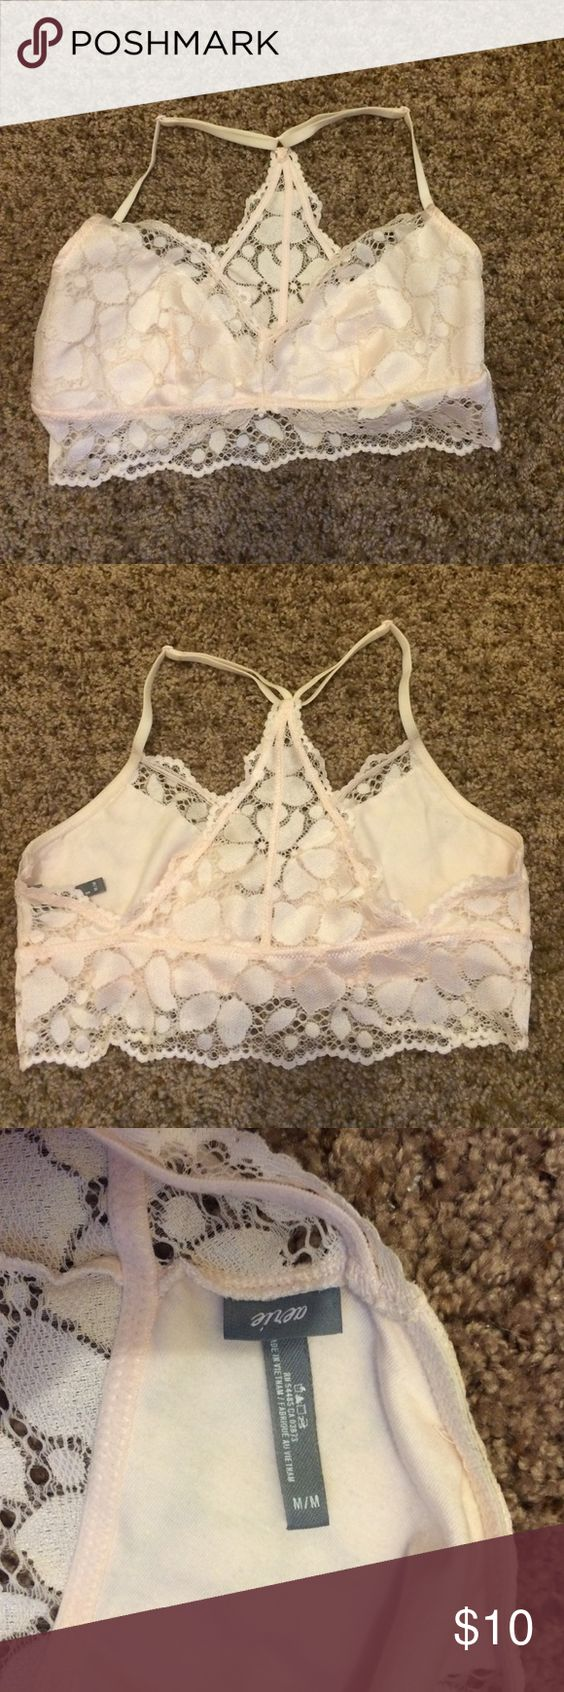 aerie light pink lace bralette Never worn, perfect condition, beautiful light pink color. aerie Intimates & Sleepwear Bandeaus